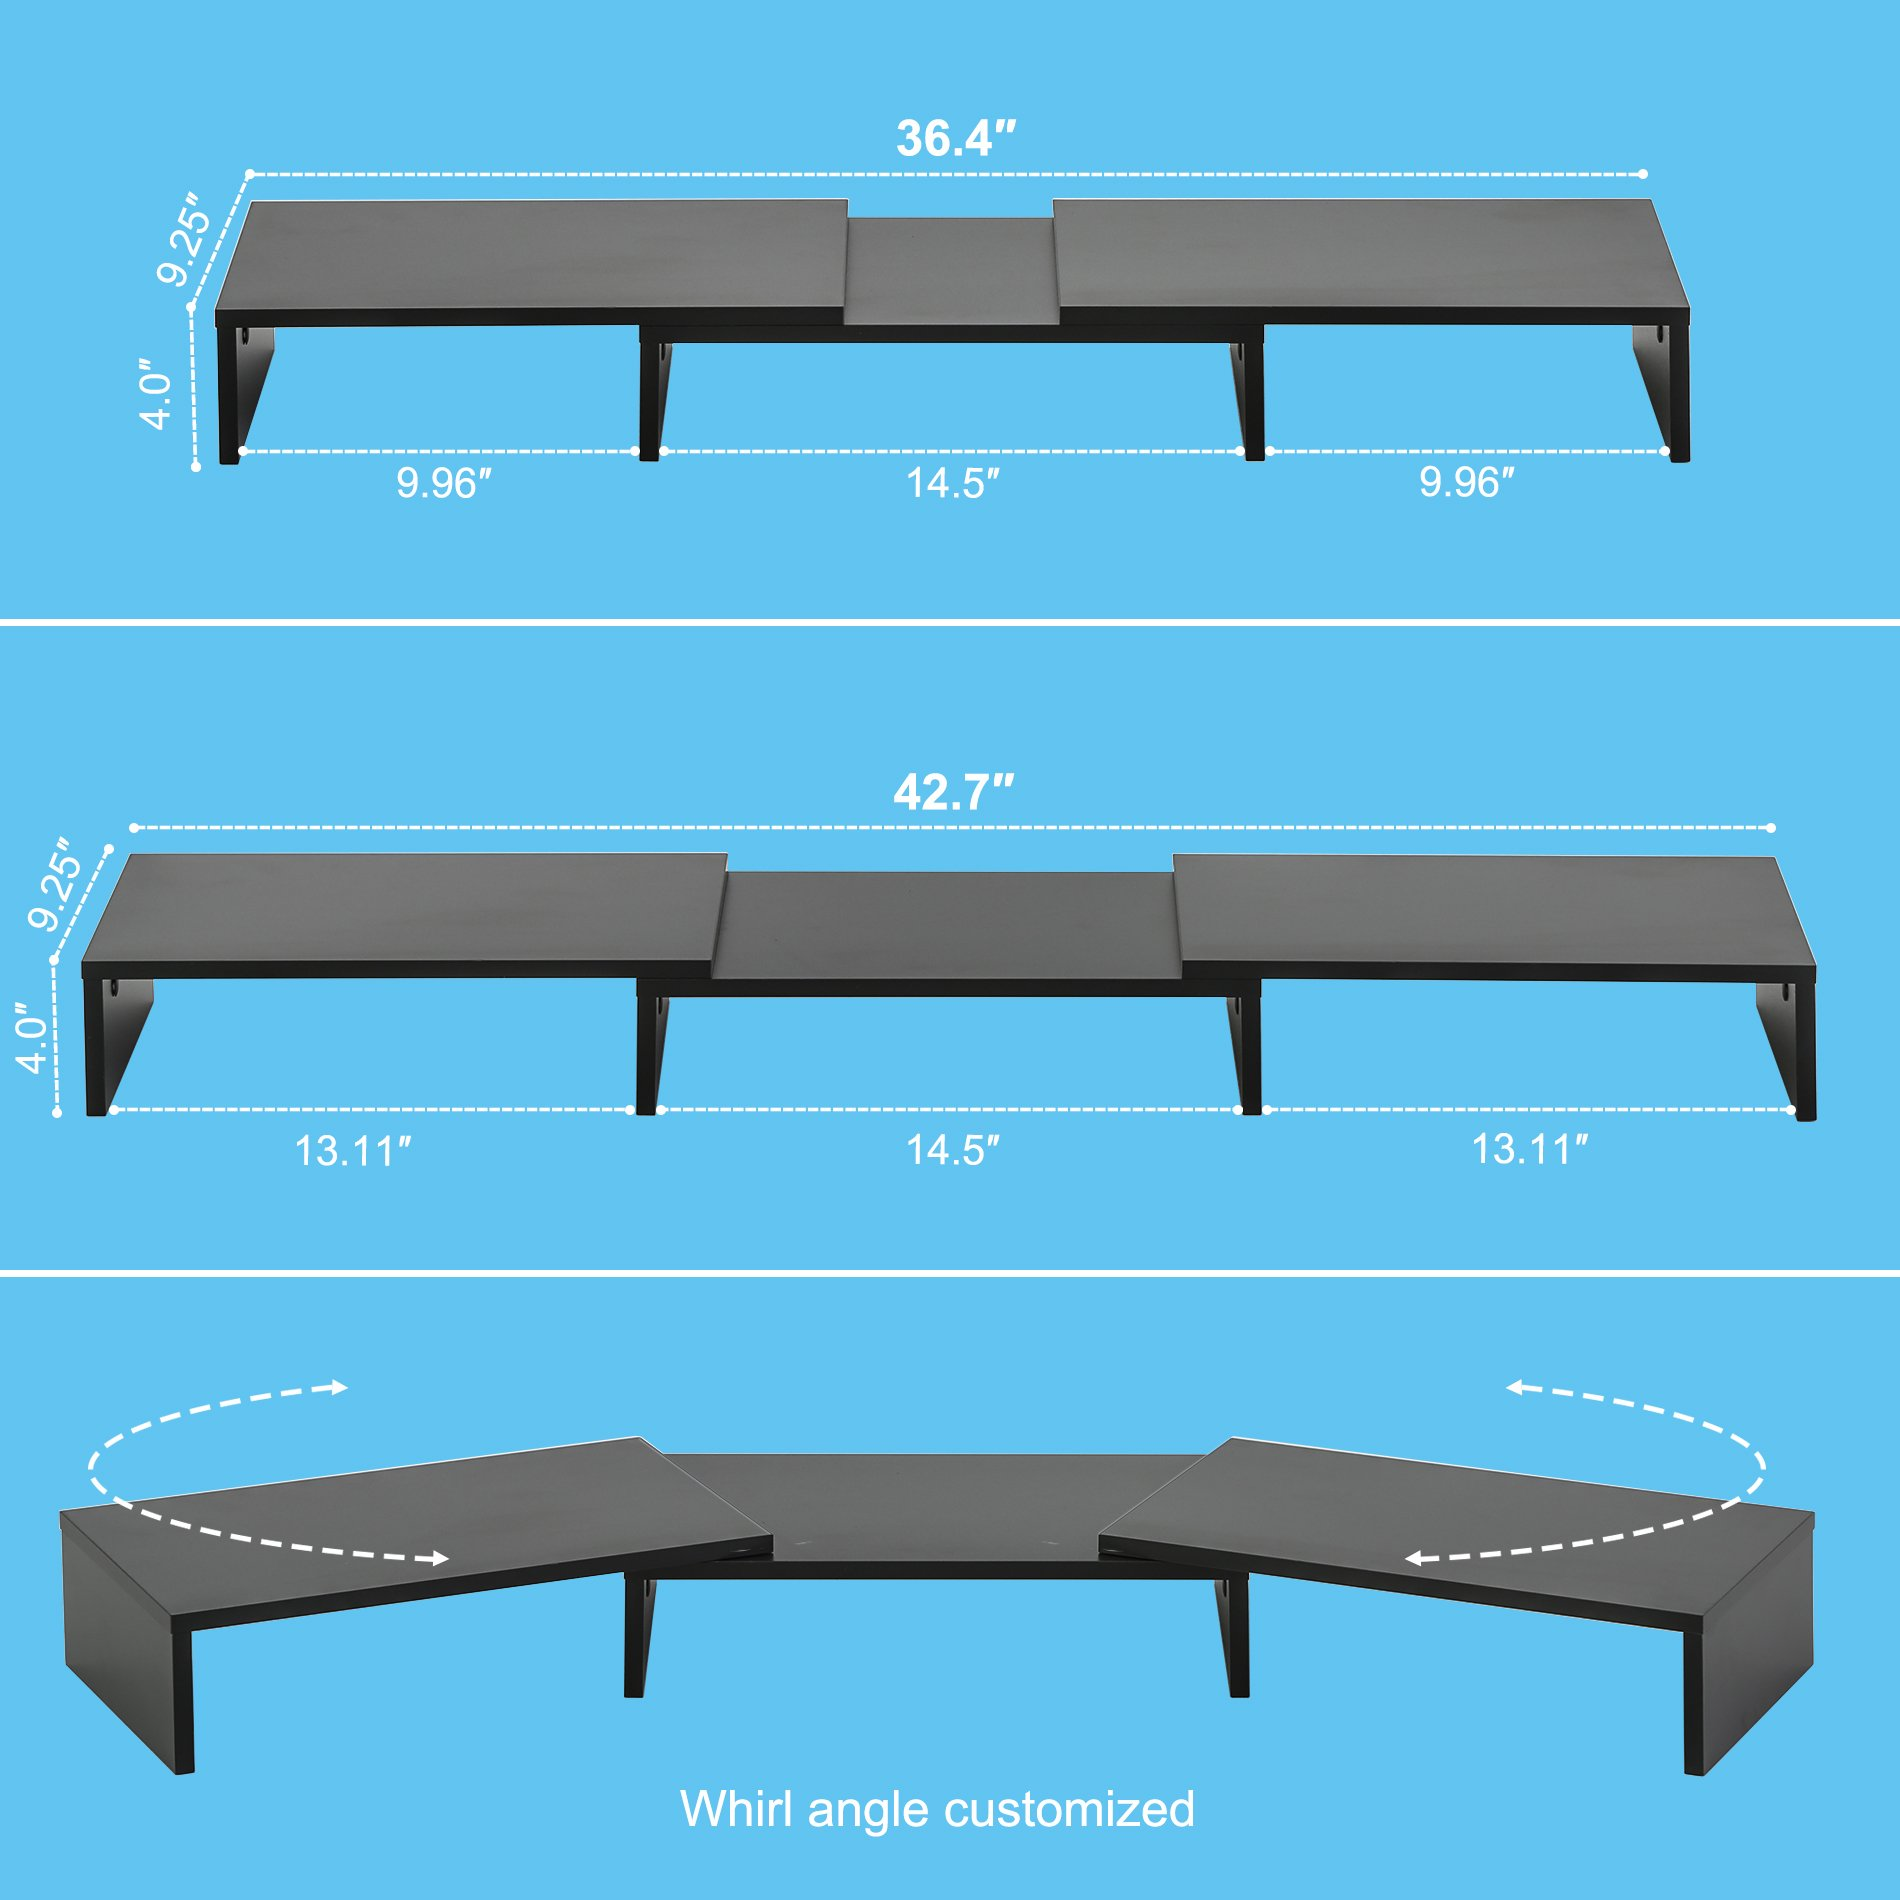 FITUEYES 3 Shelf Monitor Stand Riser with Adjustable Length and Angle,DT108001WB by FITUEYES (Image #3)